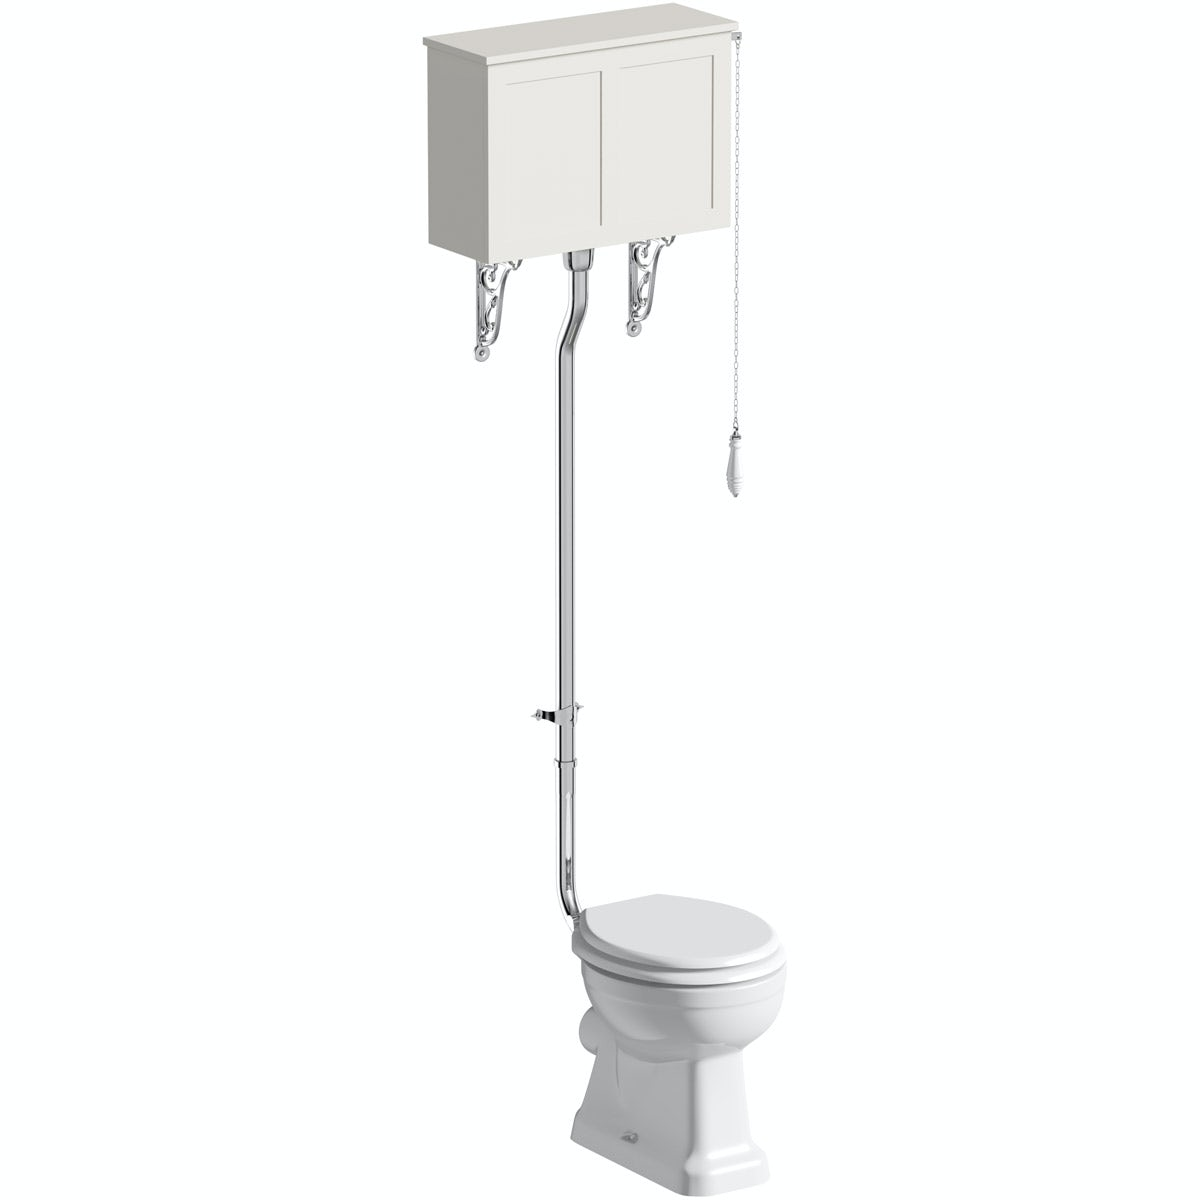 The Bath Co. Camberley high level toilet with ivory toilet box and white seat